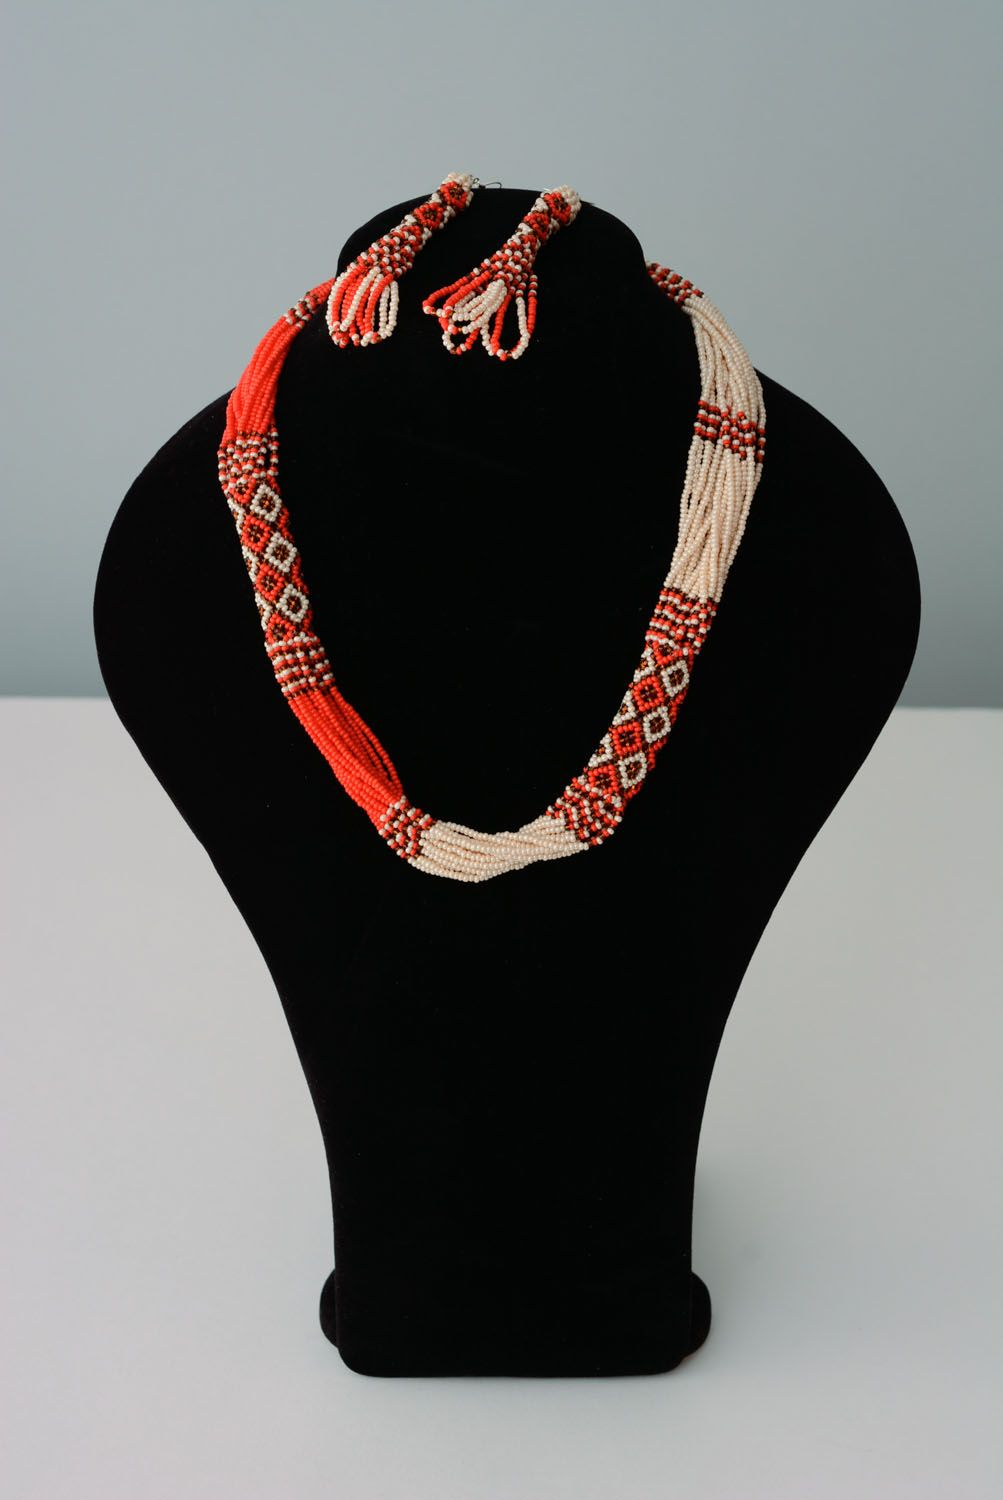 Homemade beaded jewelry set photo 1